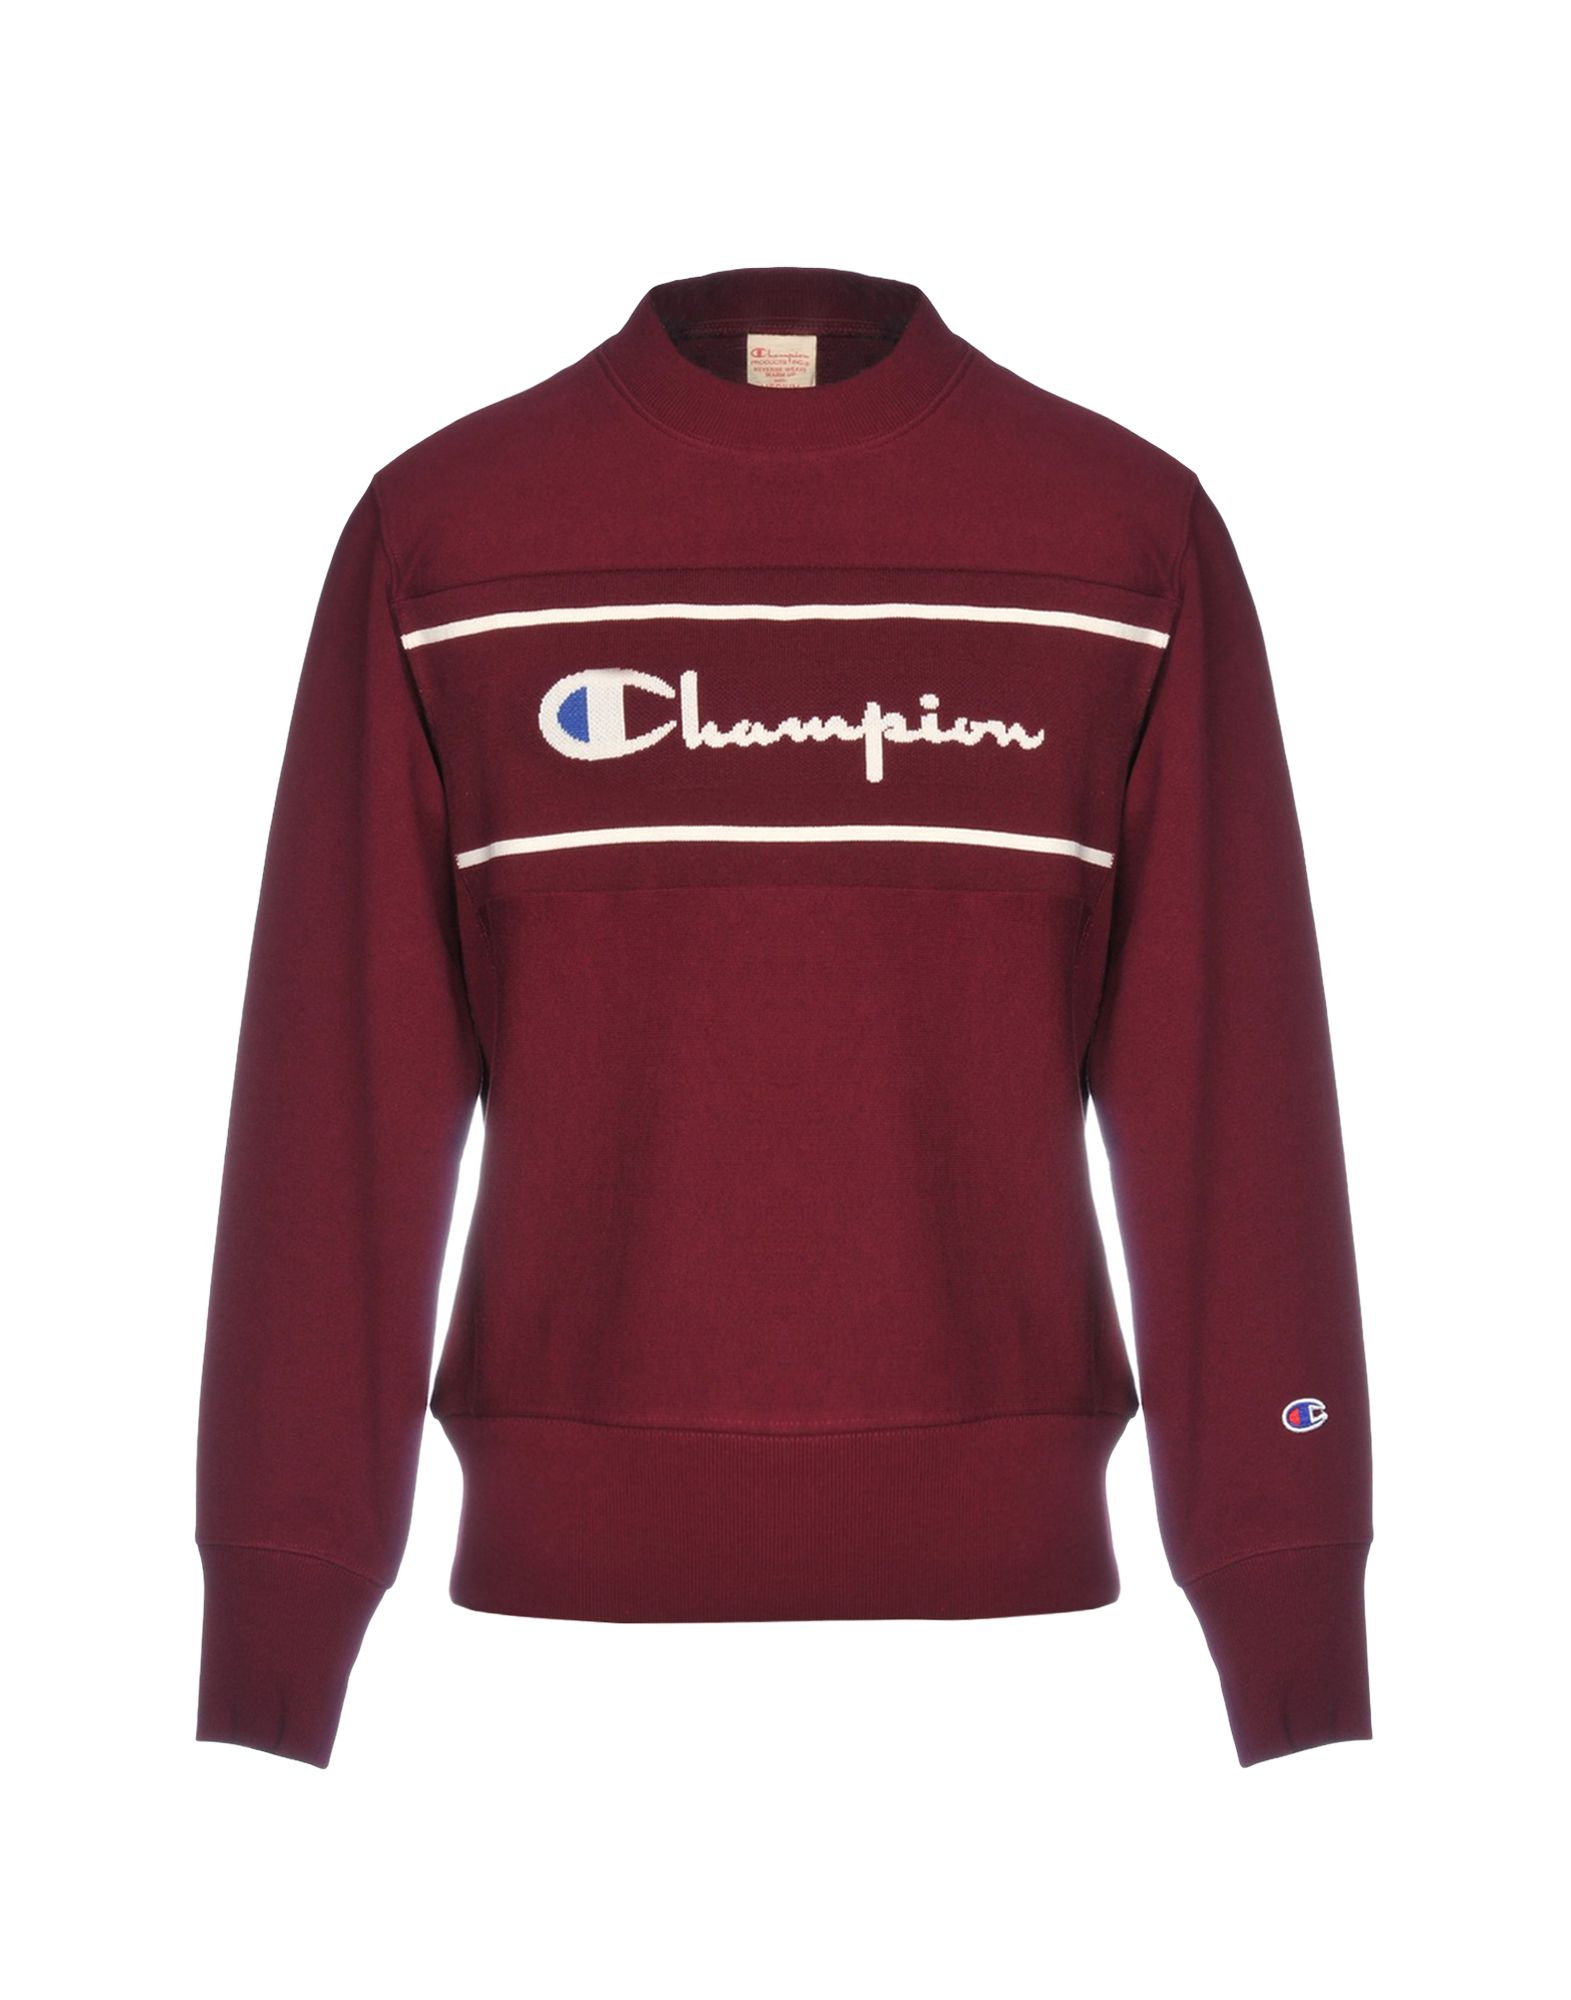 CHAMPION Sweatshirt , Sweaters and Sweatshirts